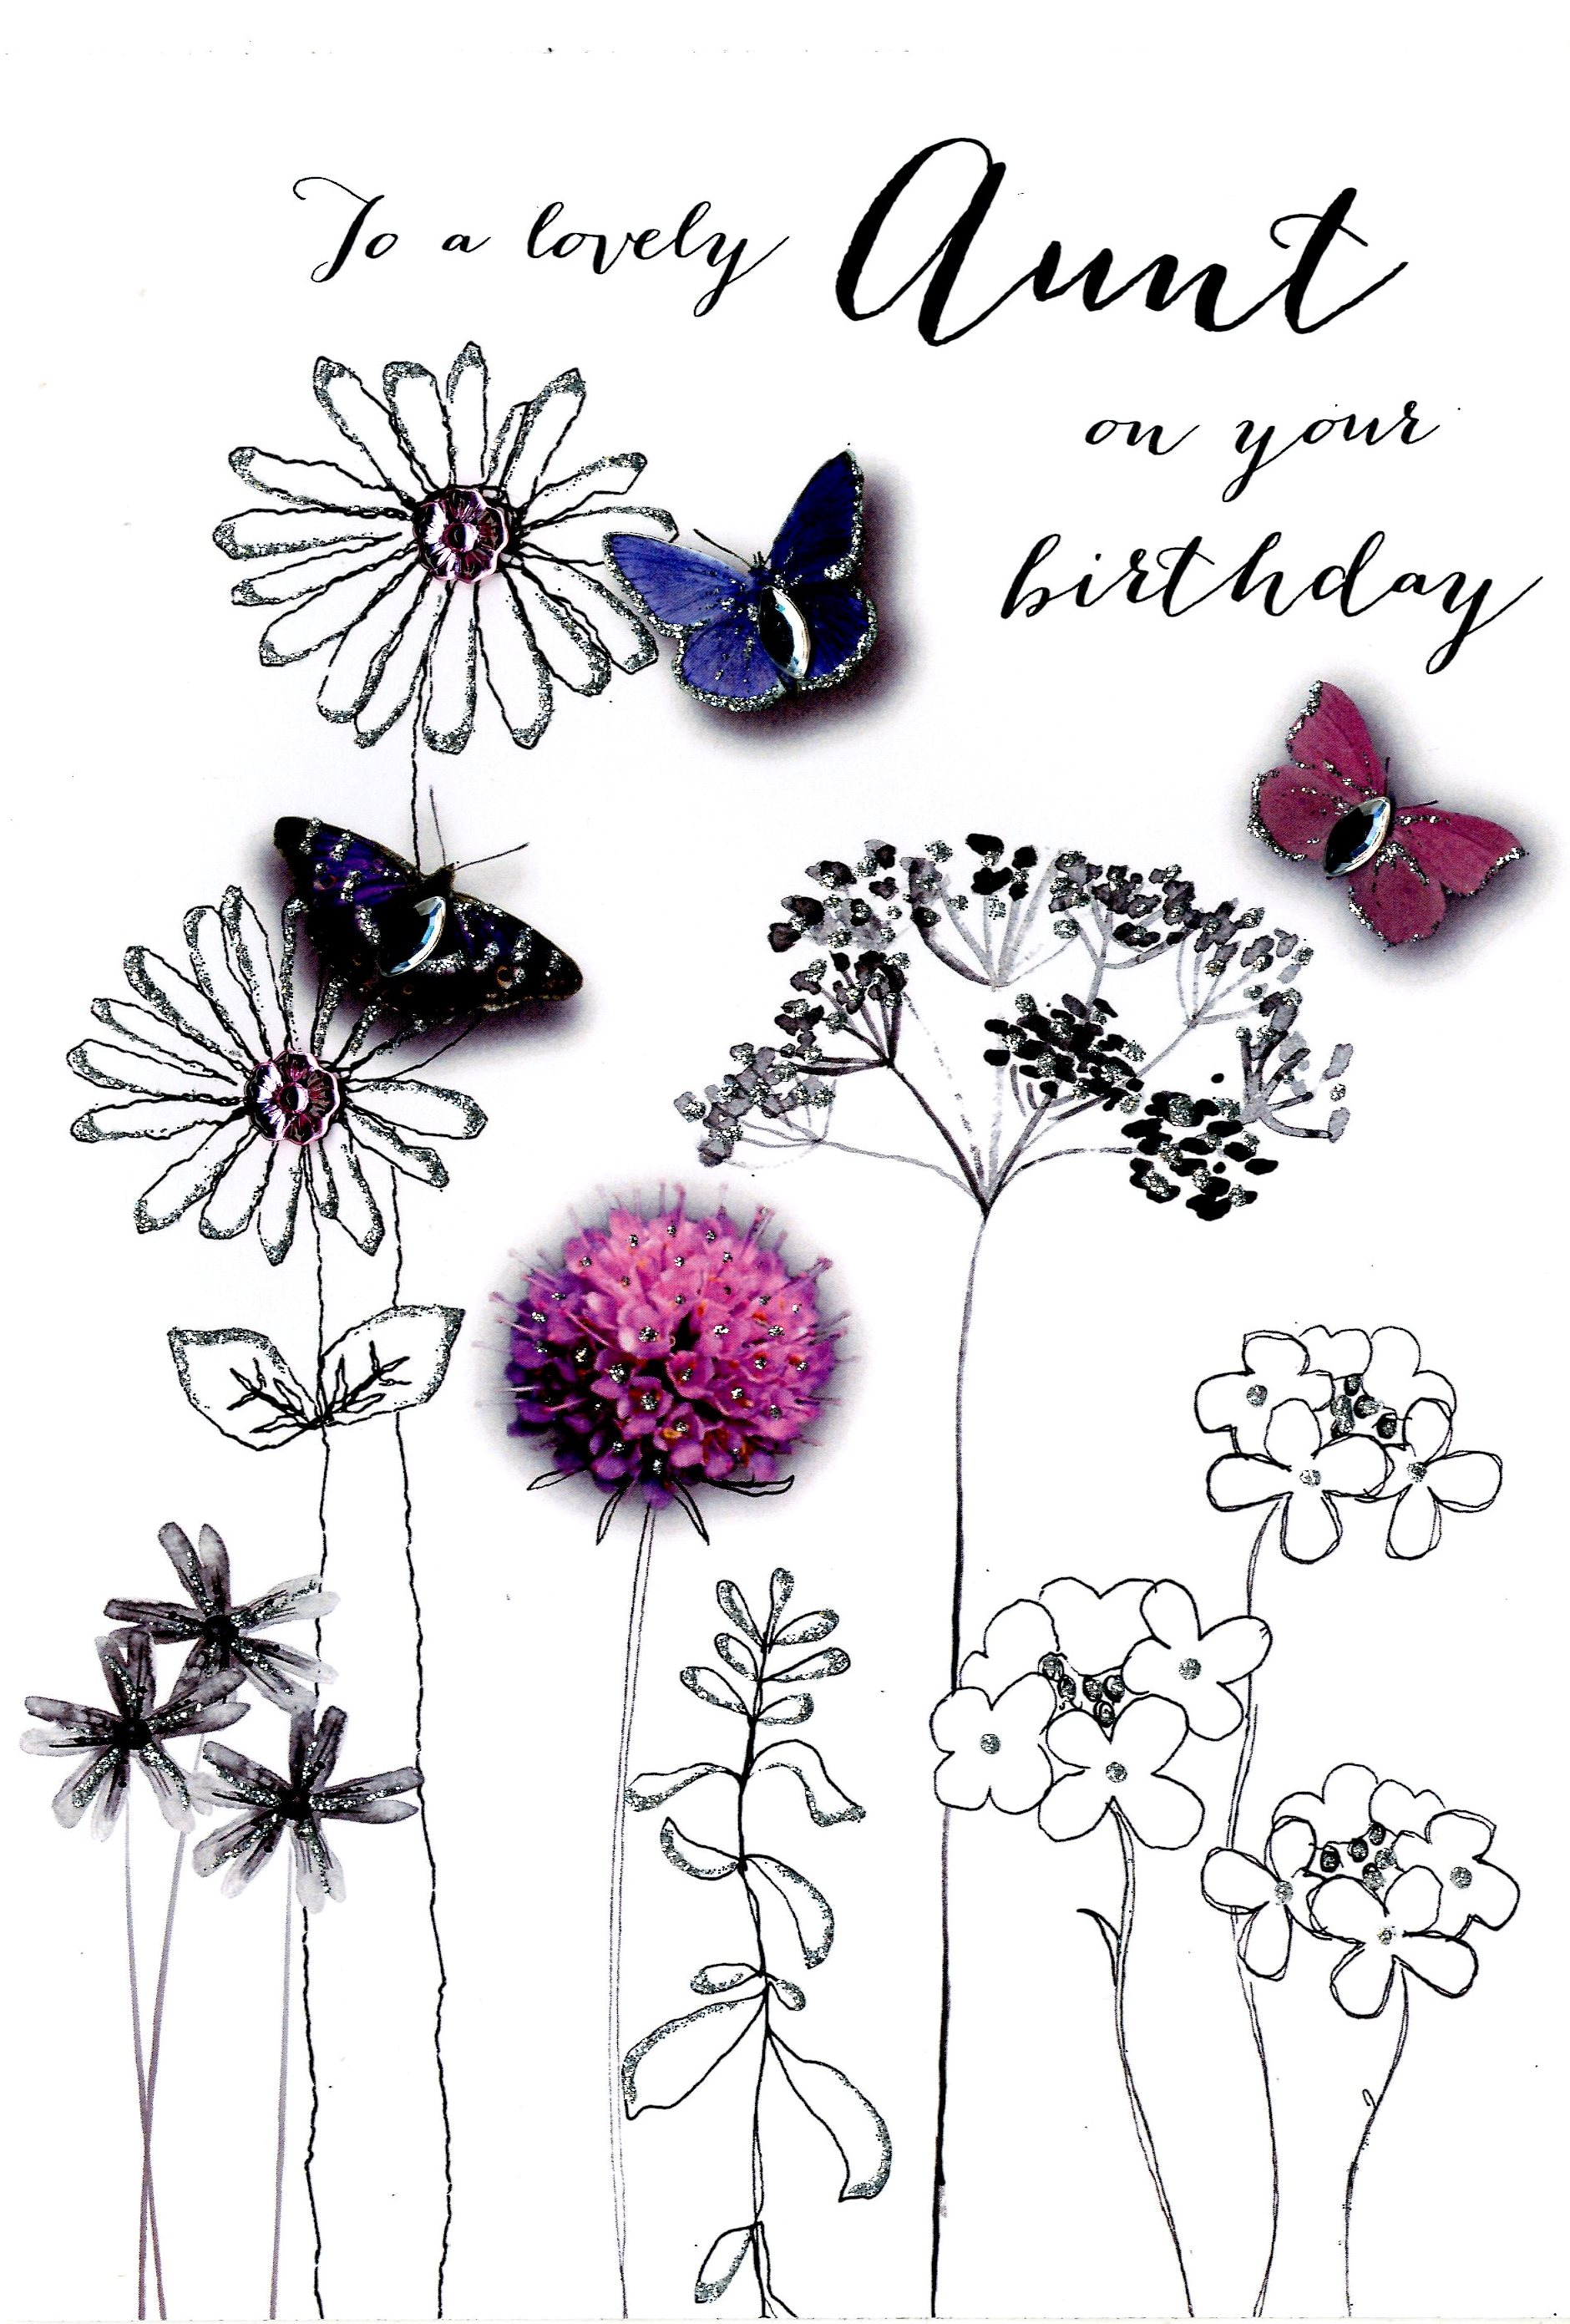 Lovely aunt birthday embellished greeting card cards love kates lovely aunt birthday embellished greeting card kristyandbryce Image collections